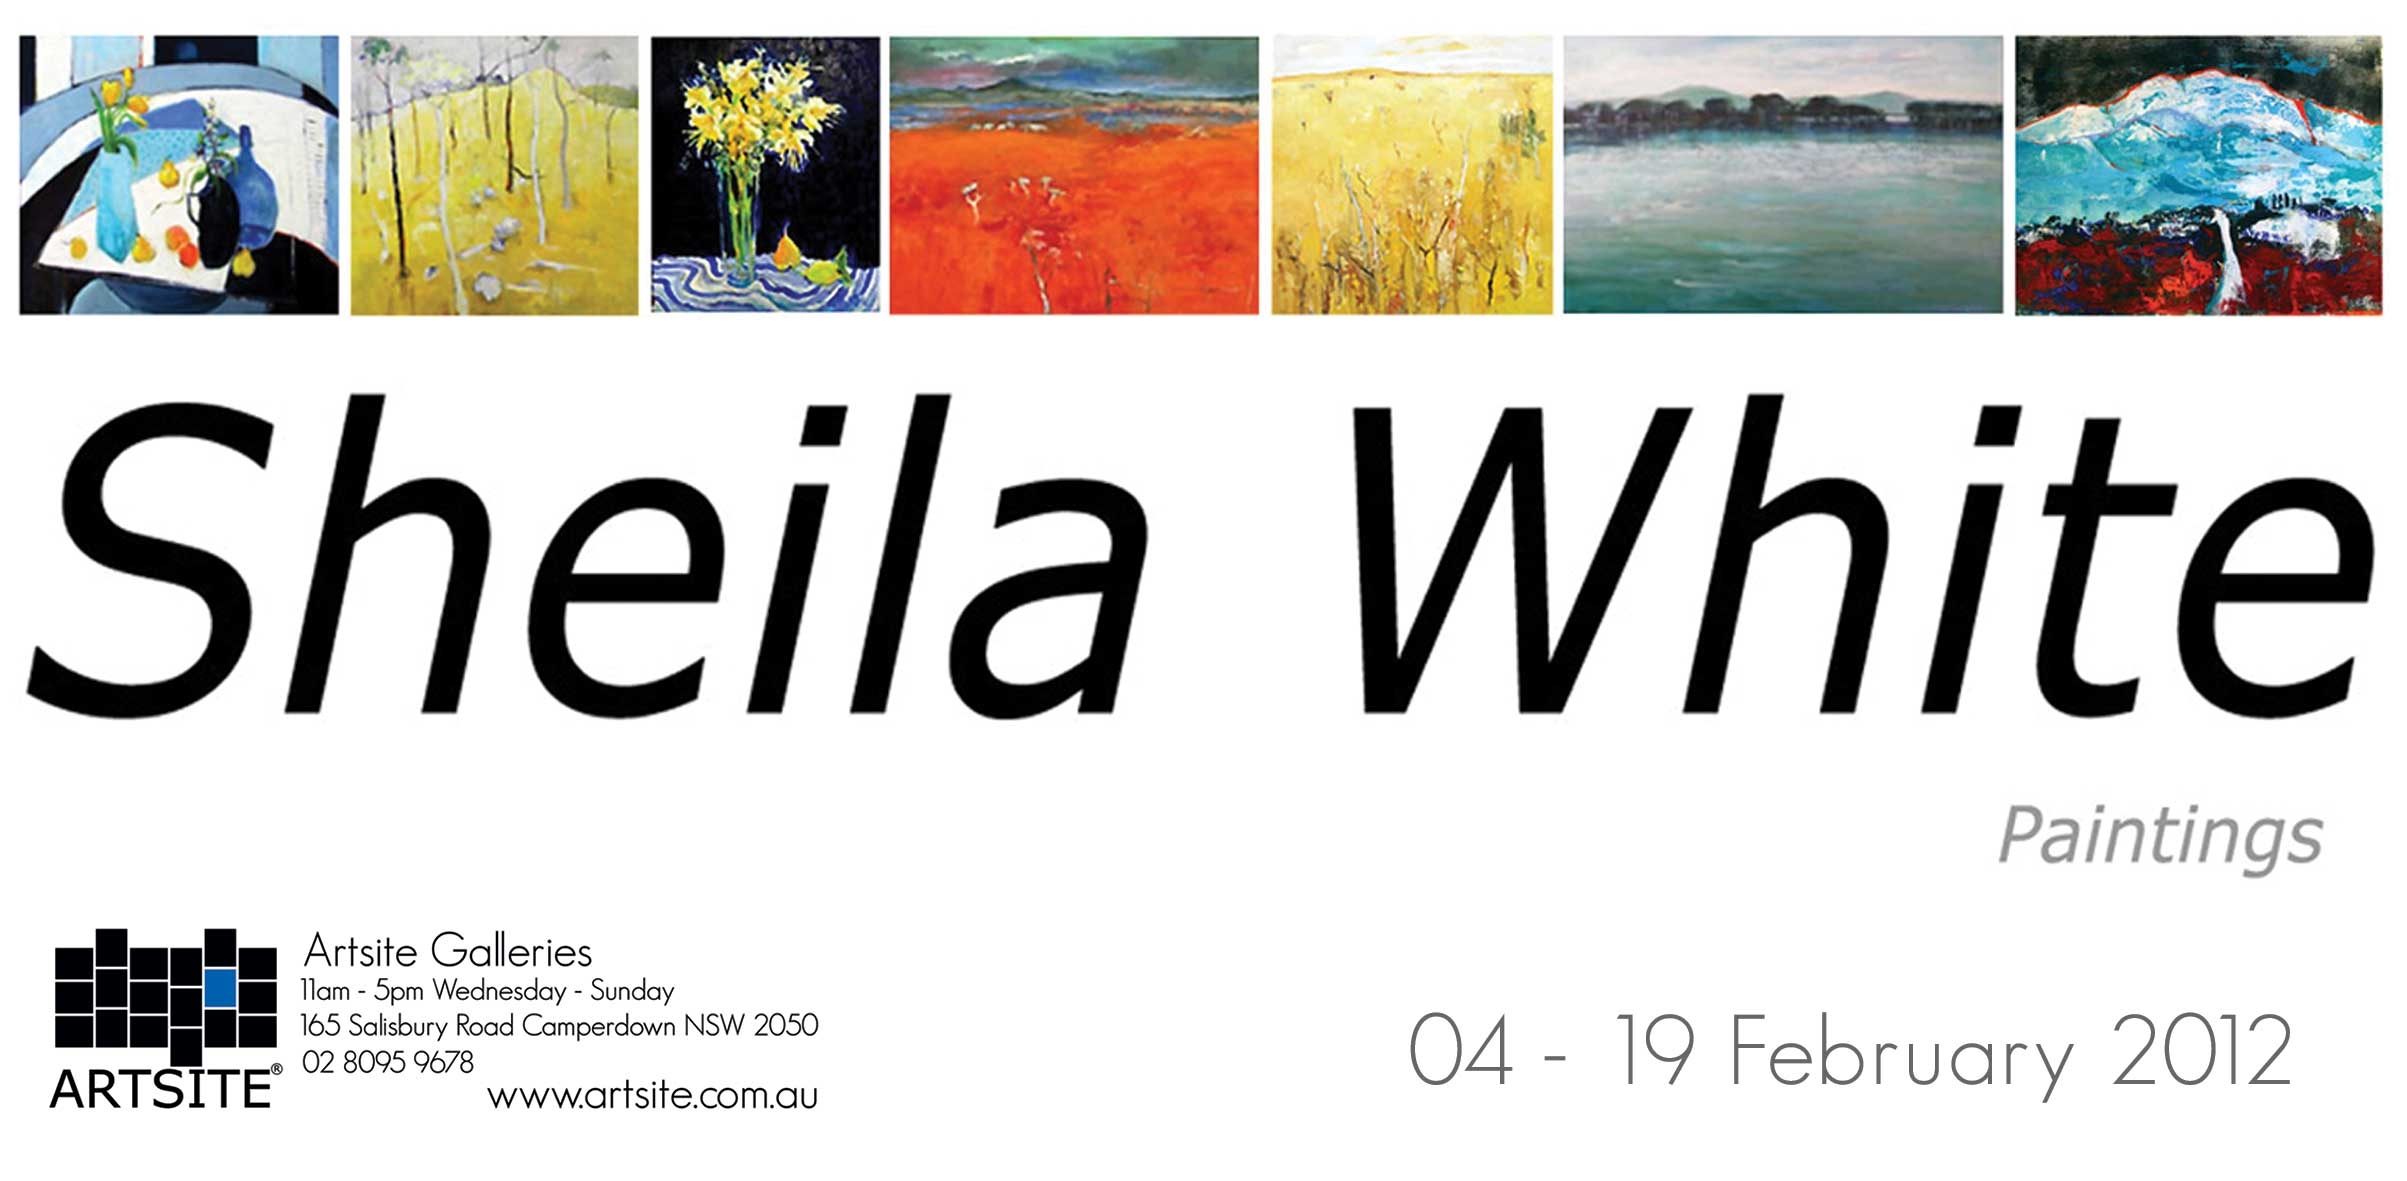 View Exhibition at Artsite Gallery, Sydney: 04 - 19 February 2012 Sheila White - Solo Exhibition